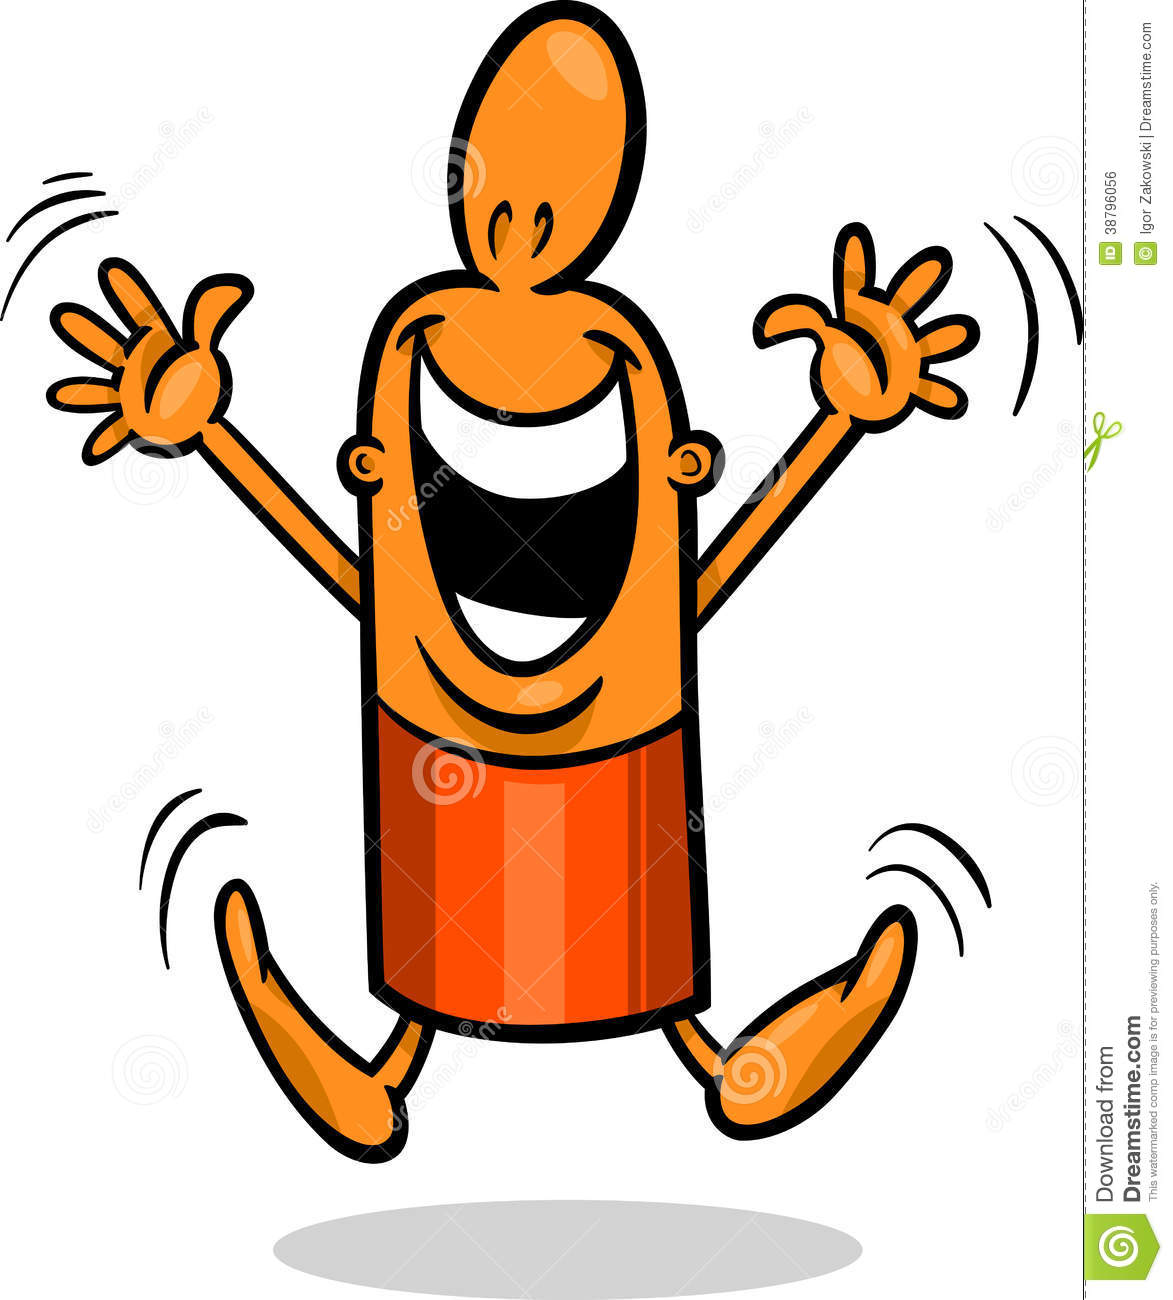 excited-guy-cartoon-illustration-happy-funny-character-38796056.jpg